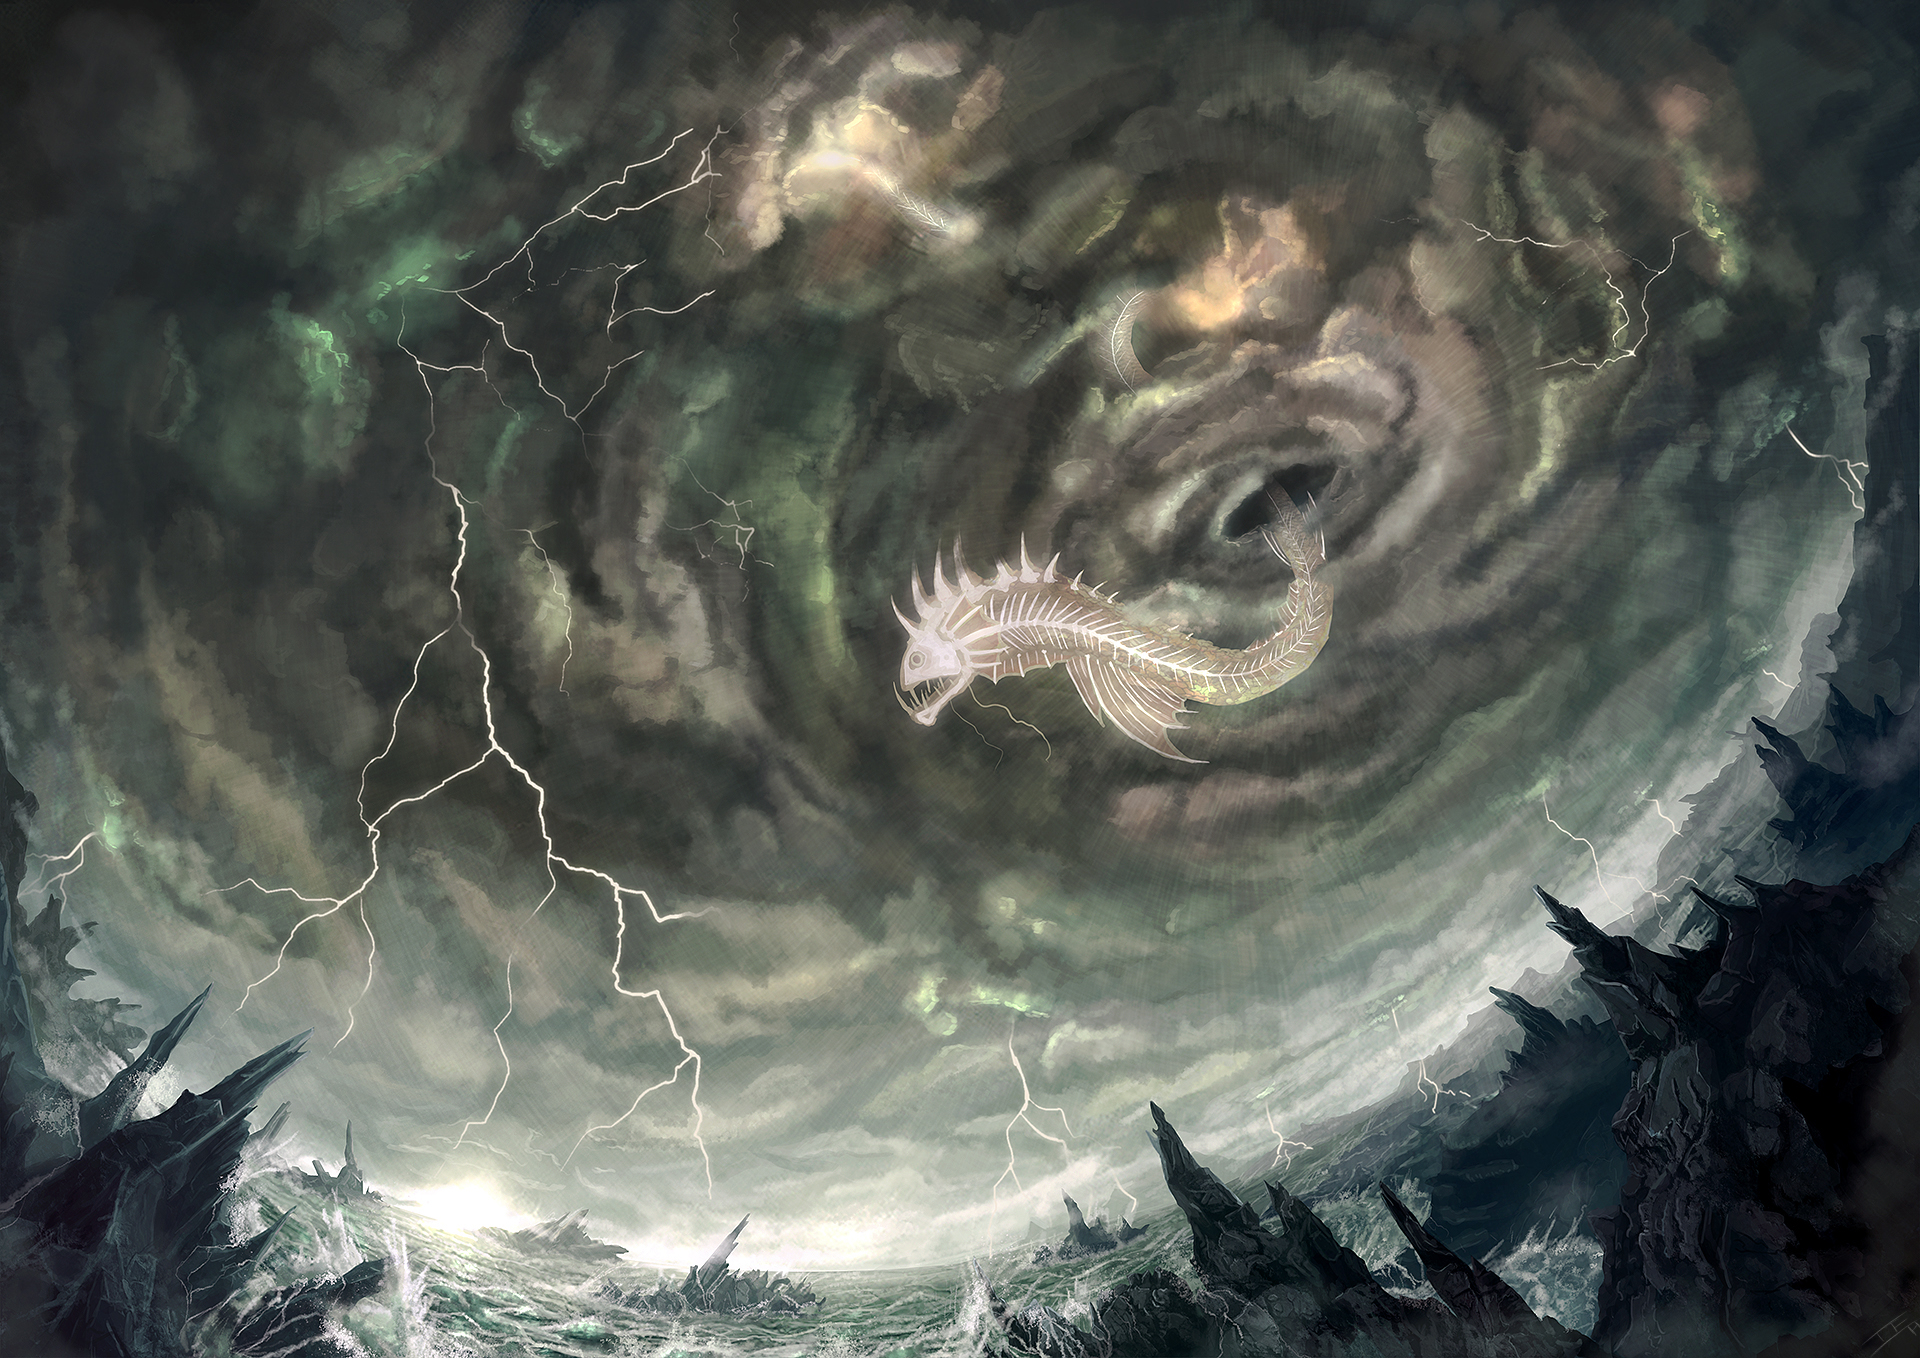 The Maelstrom by mistermojo28